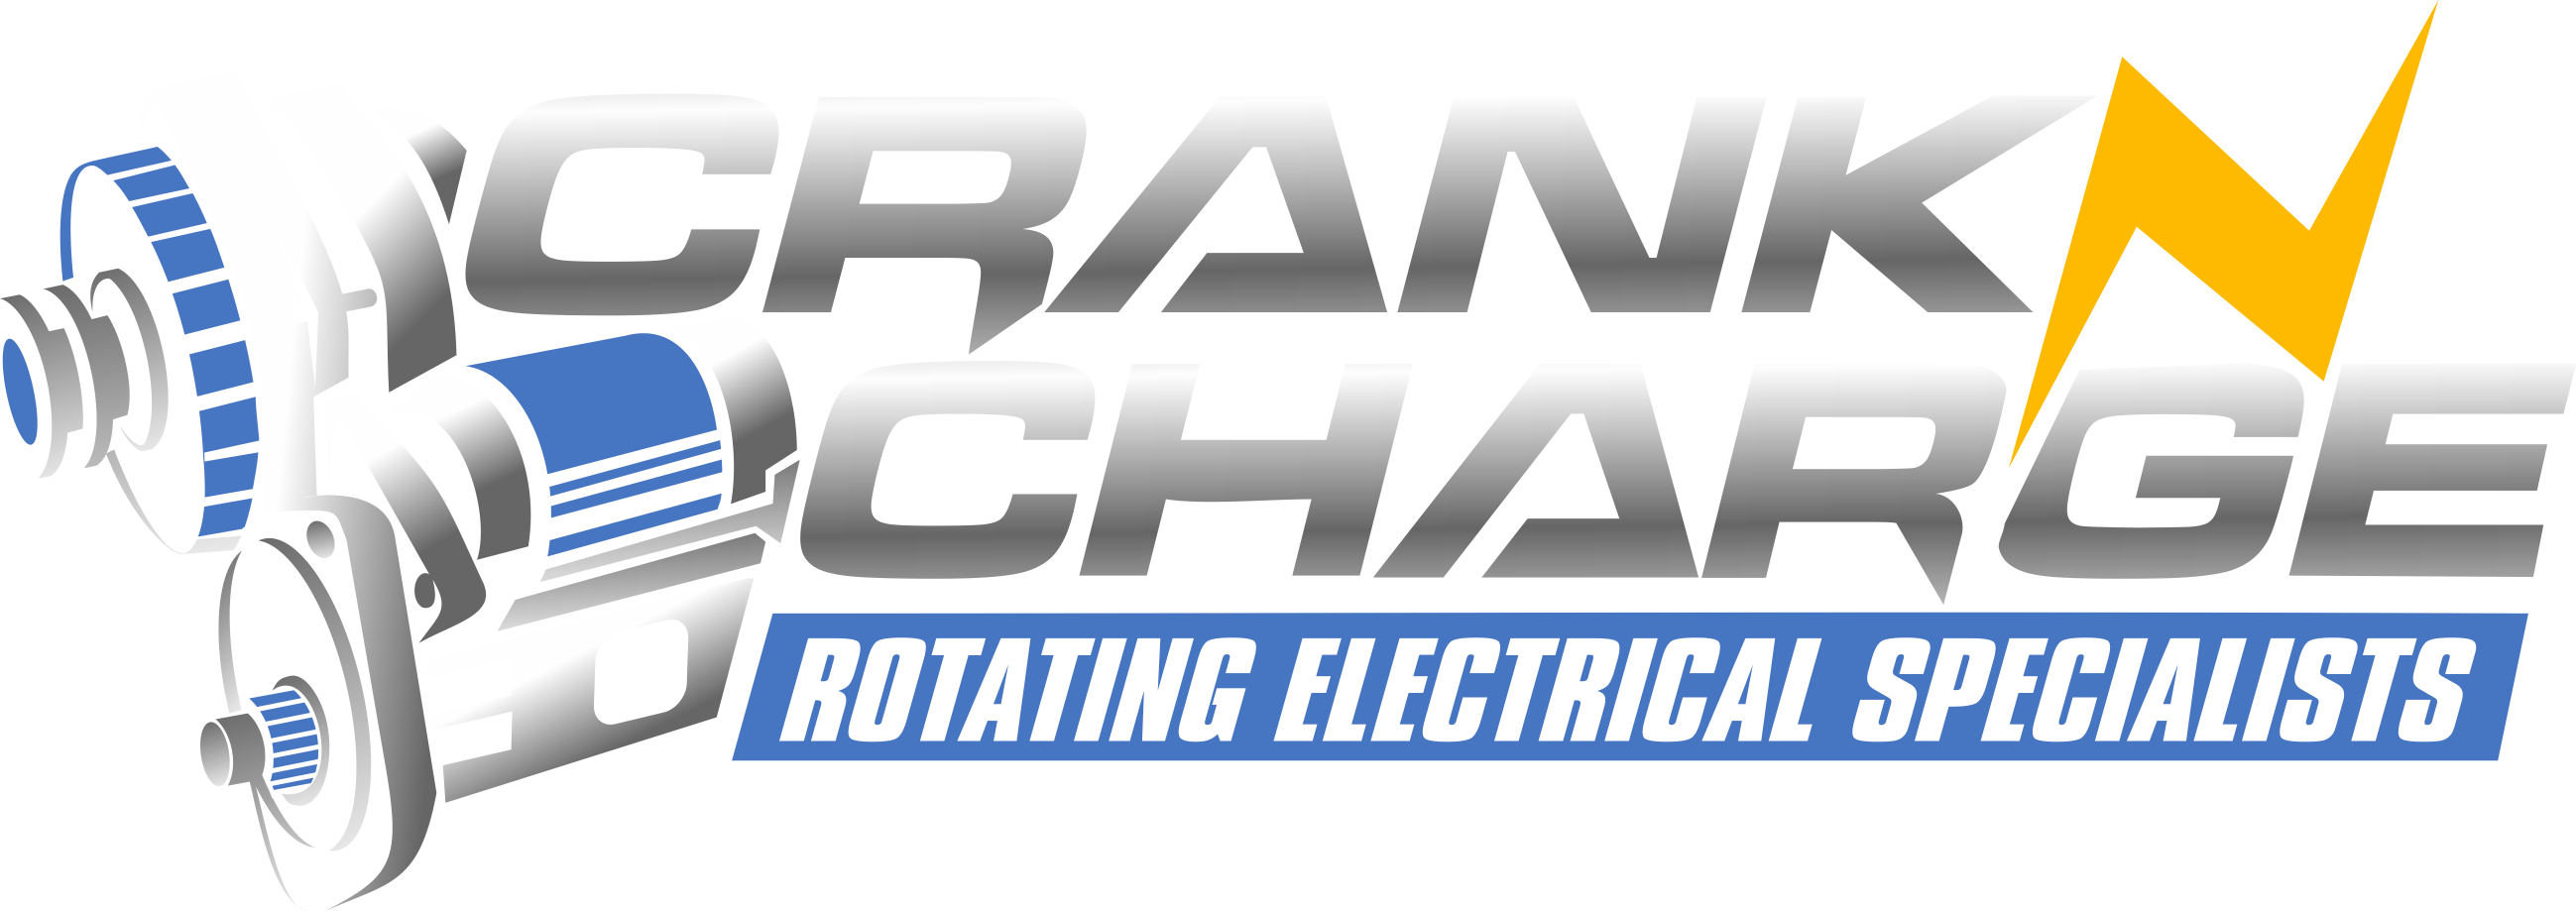 Crank N Charge- Auto parts seller needs a new logo!